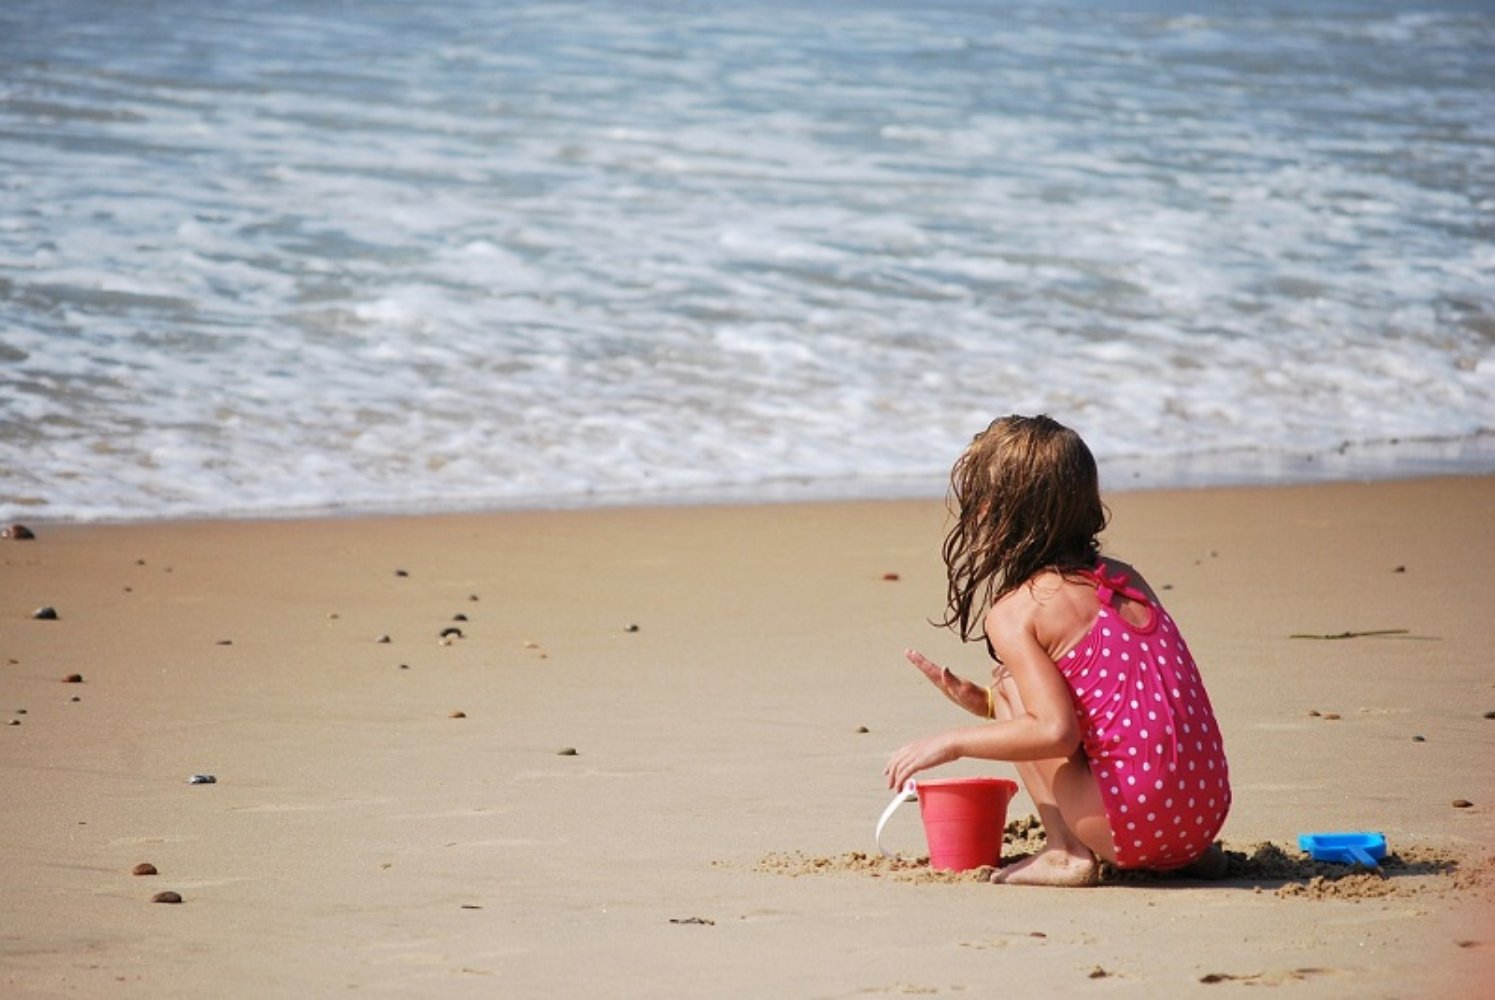 spiagge-bambini-mare-toscana_wp9_10481.jpg